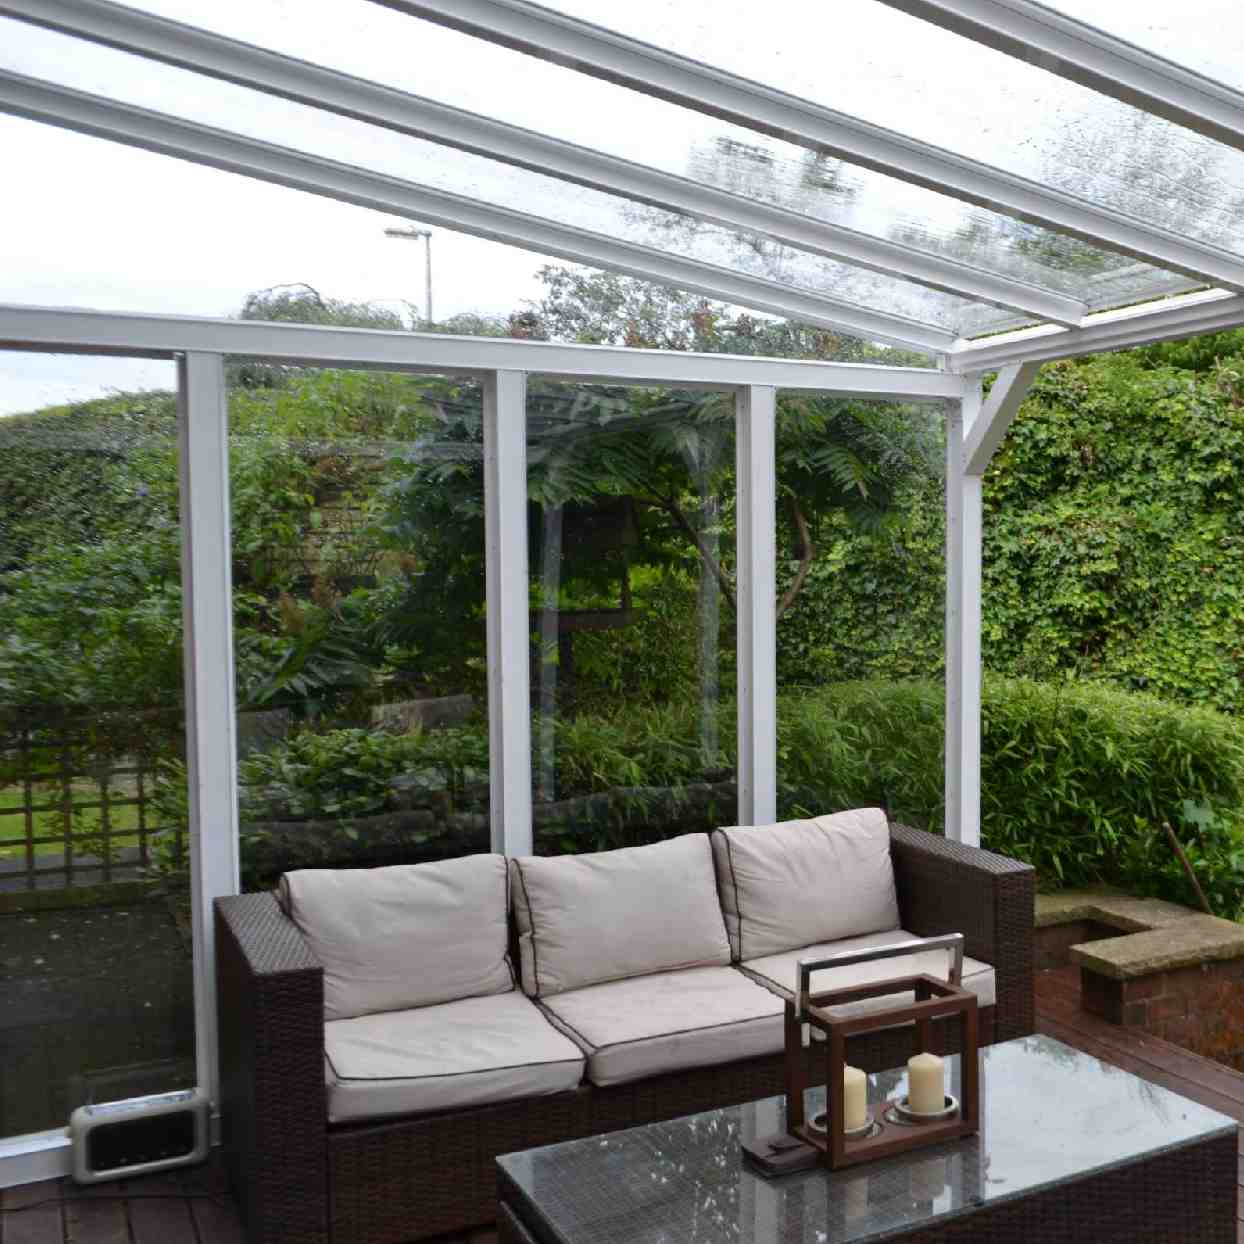 Buy Omega Verandah with 16mm Polycarbonate Glazing - 11.4m (W) x 3.5m (P), (5) Supporting Posts online today